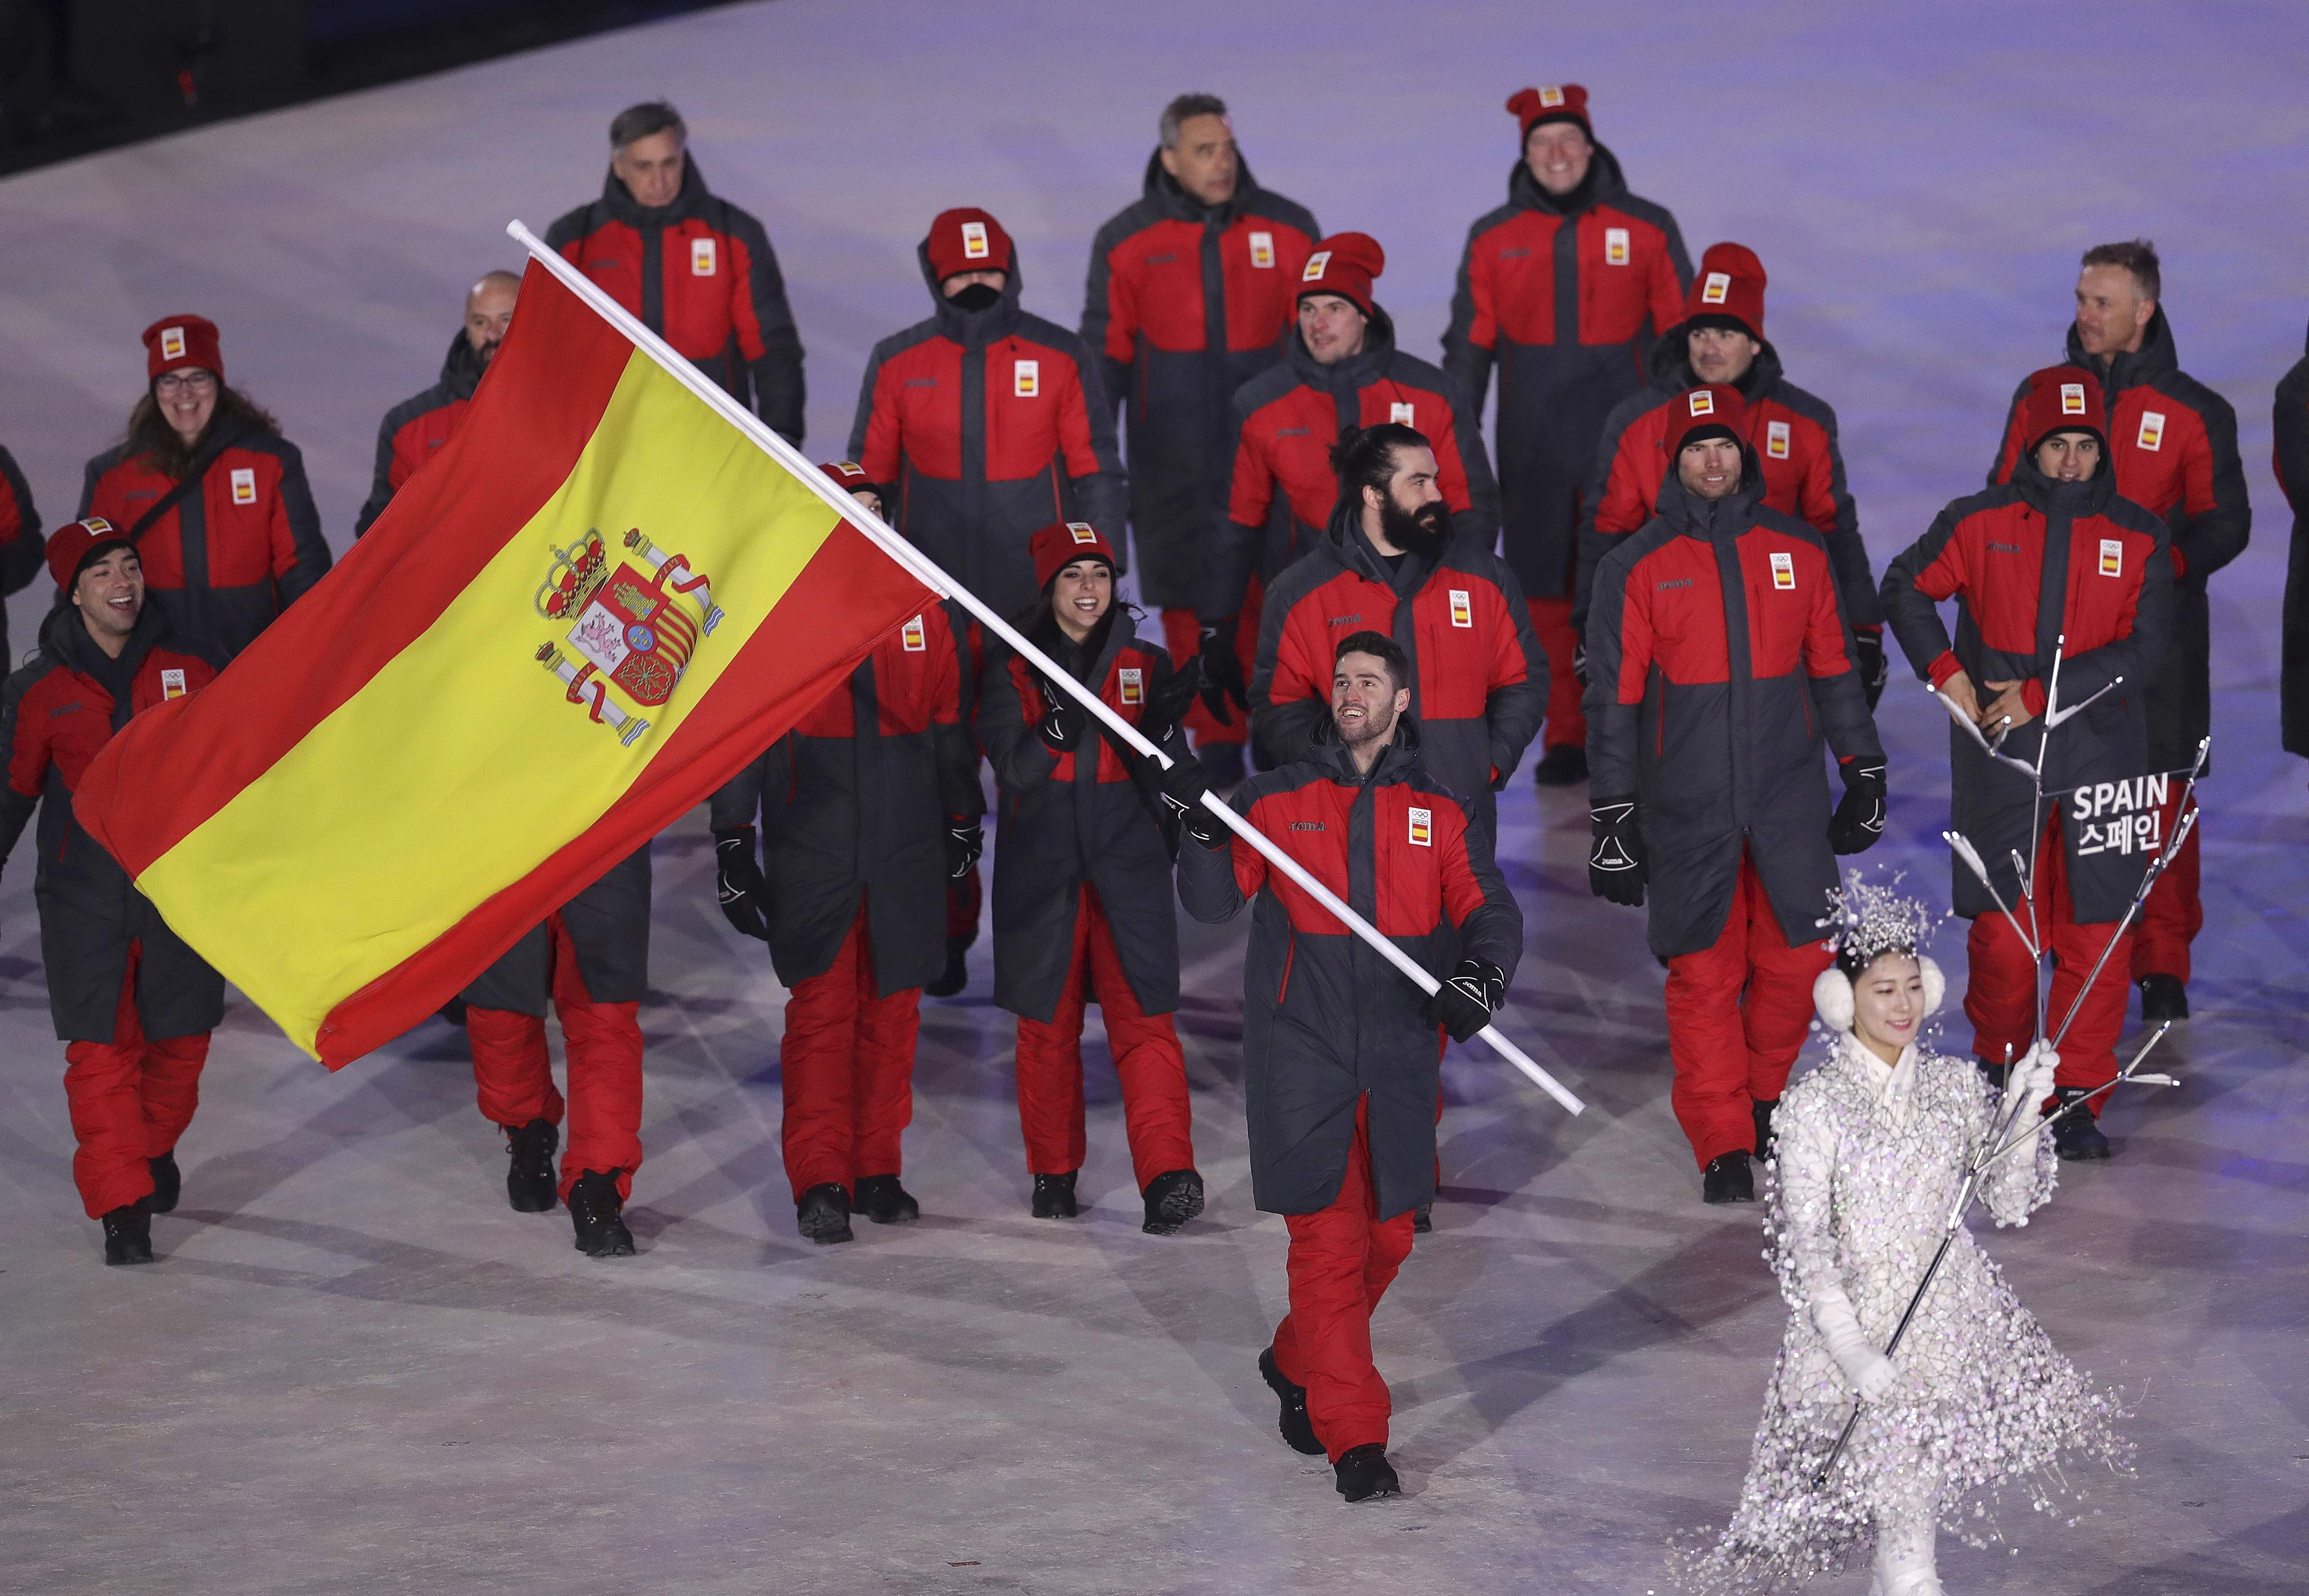 Lucas Eguibar carries the flag of Spain during the opening ceremony of the 2018 Winter Olympics in Pyeongchang, South Korea, Friday, Feb. 9, 2018. (AP Photo/Michael Sohn)